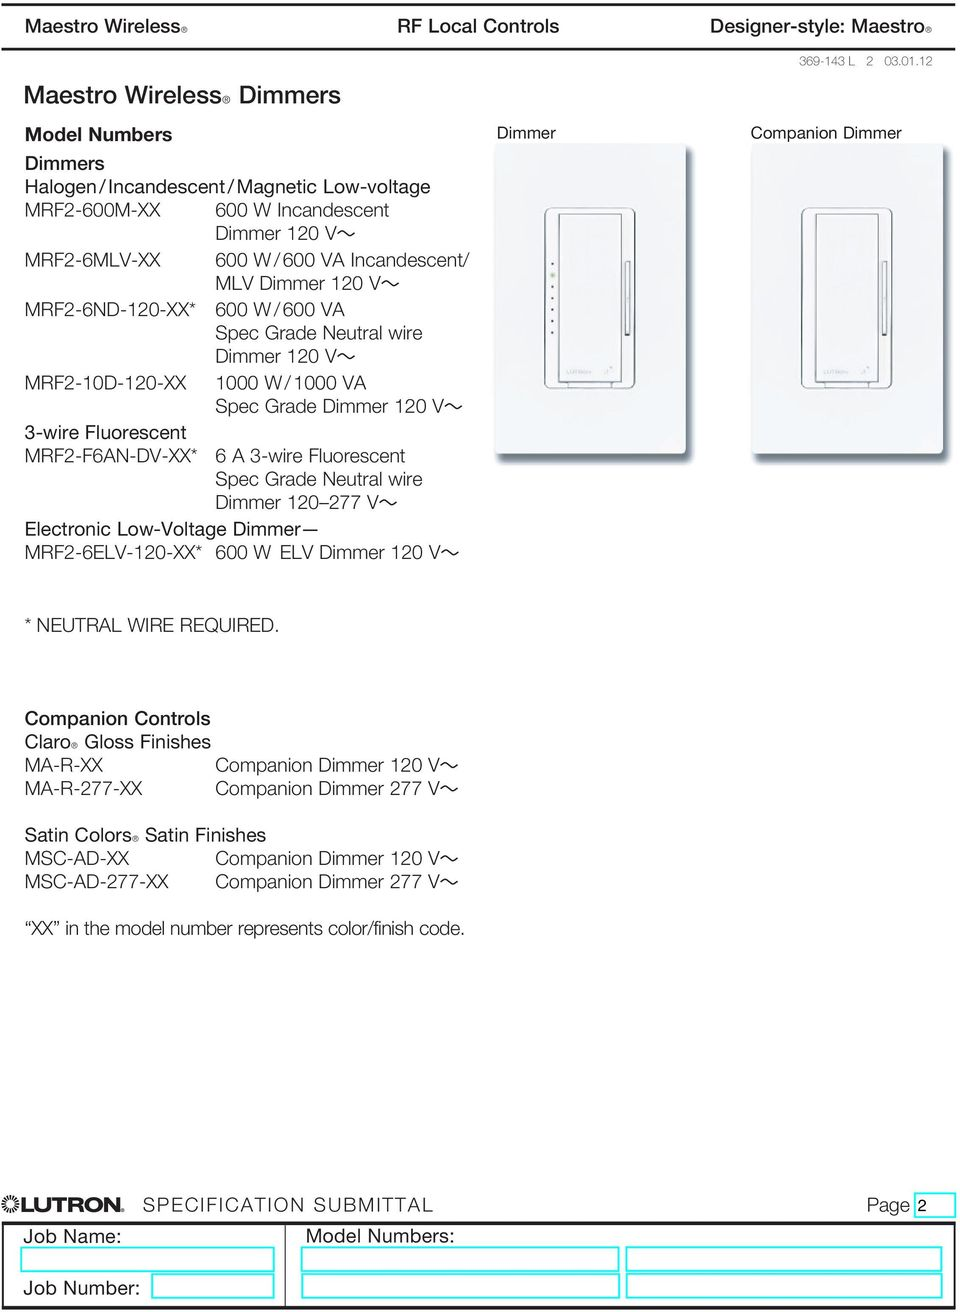 Maestro Wireless Dimmers and Switches - PDF on star wiring diagram, pulse wiring diagram, tobias wiring diagram, mutant wiring diagram, metro wiring diagram, matrix wiring diagram, mars wiring diagram, harmony wiring diagram, korg wiring diagram, hunter wiring diagram, taylor wiring diagram, thor wiring diagram, samsung wiring diagram, access wiring diagram, legacy wiring diagram, toshiba wiring diagram, echo wiring diagram, johnson wiring diagram, northstar wiring diagram, panasonic wiring diagram,